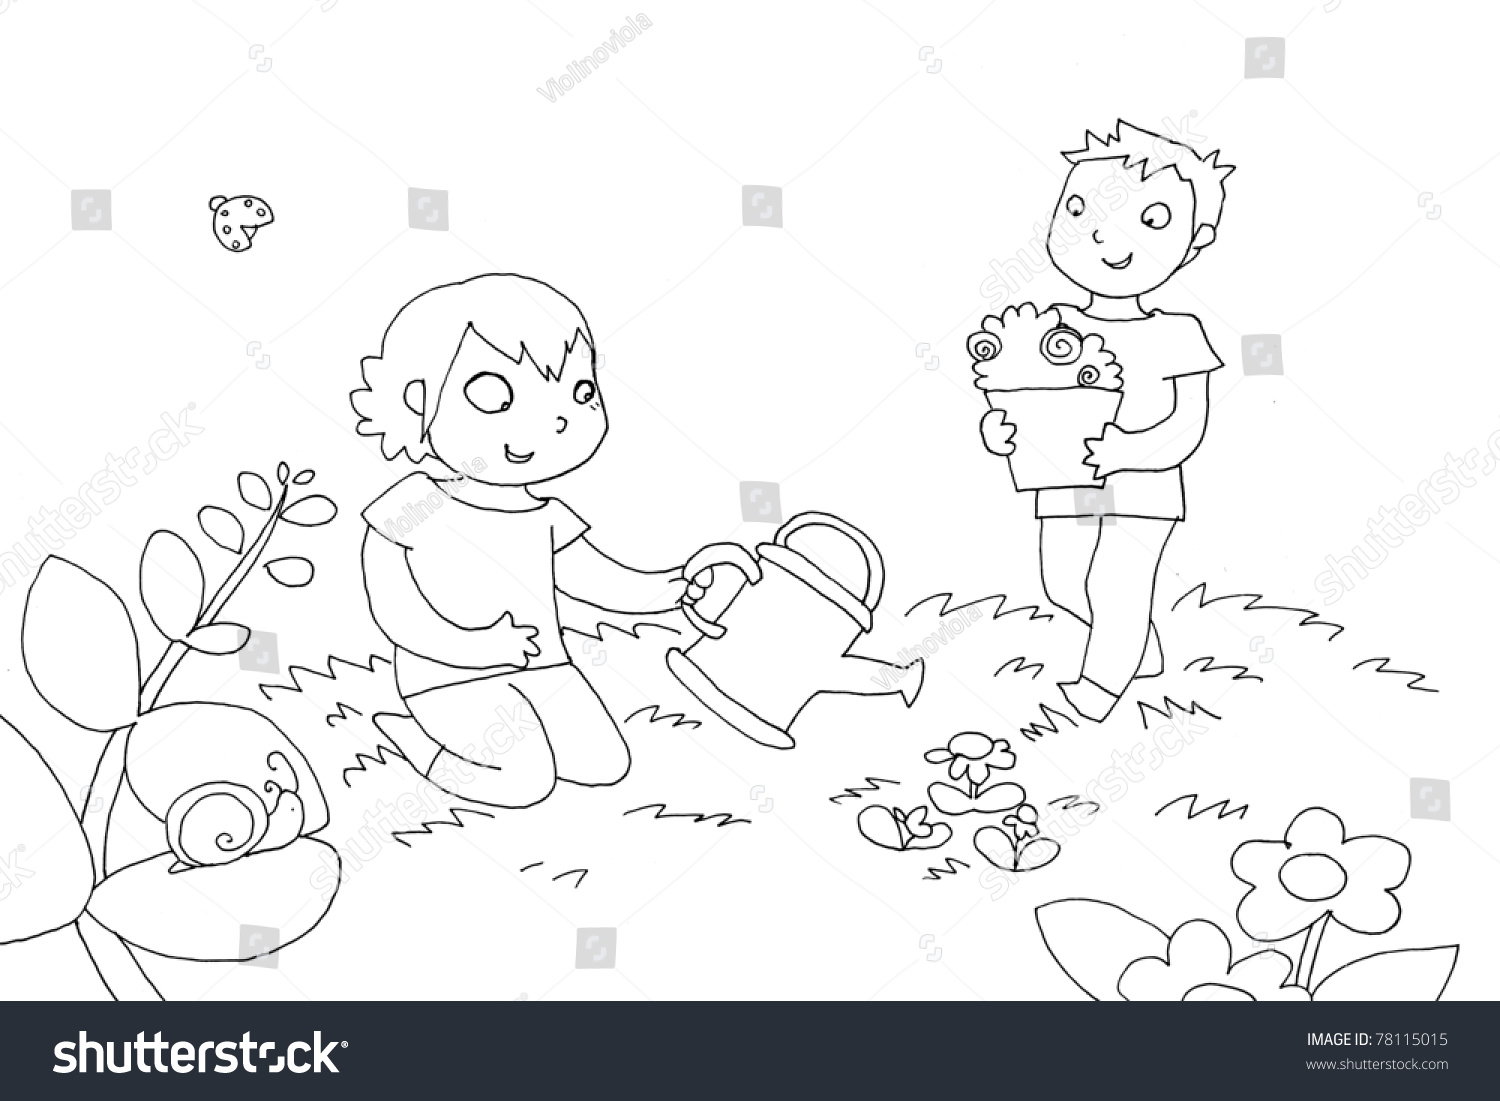 Kids Watering Plant Black And White Illustration